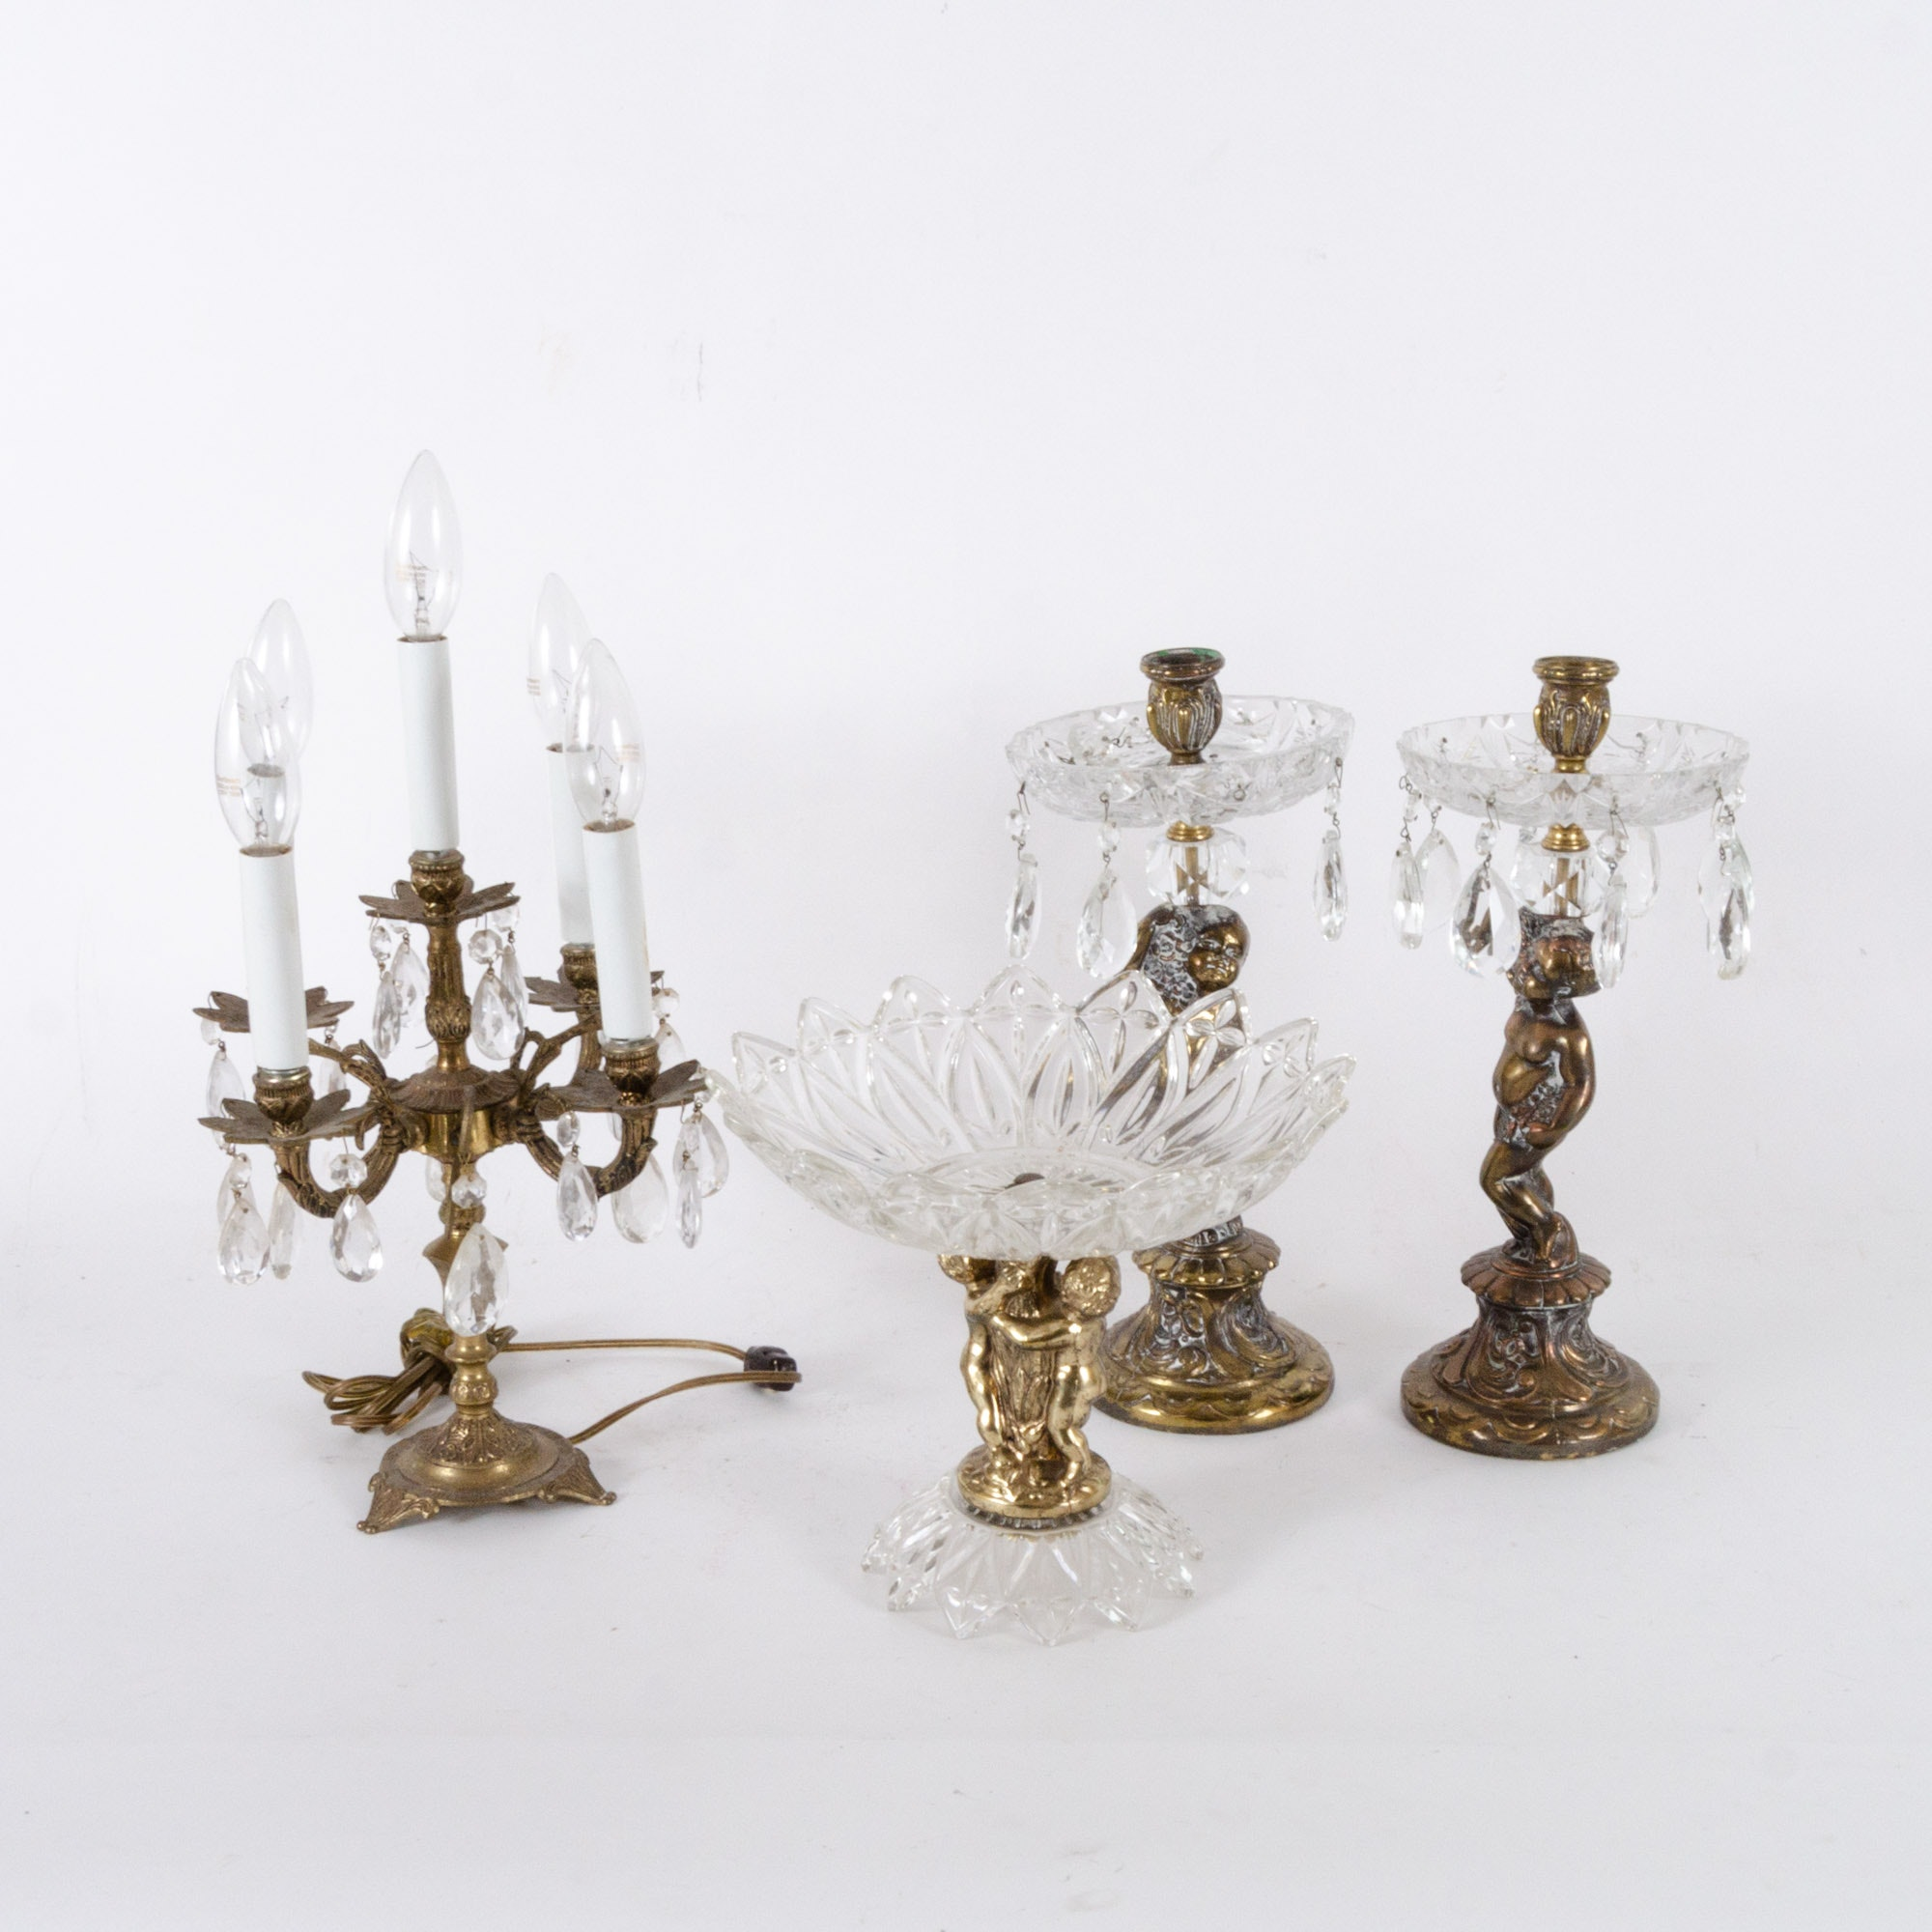 Vintage Brass Candelabra Lamp and Crystal and Glass Decor